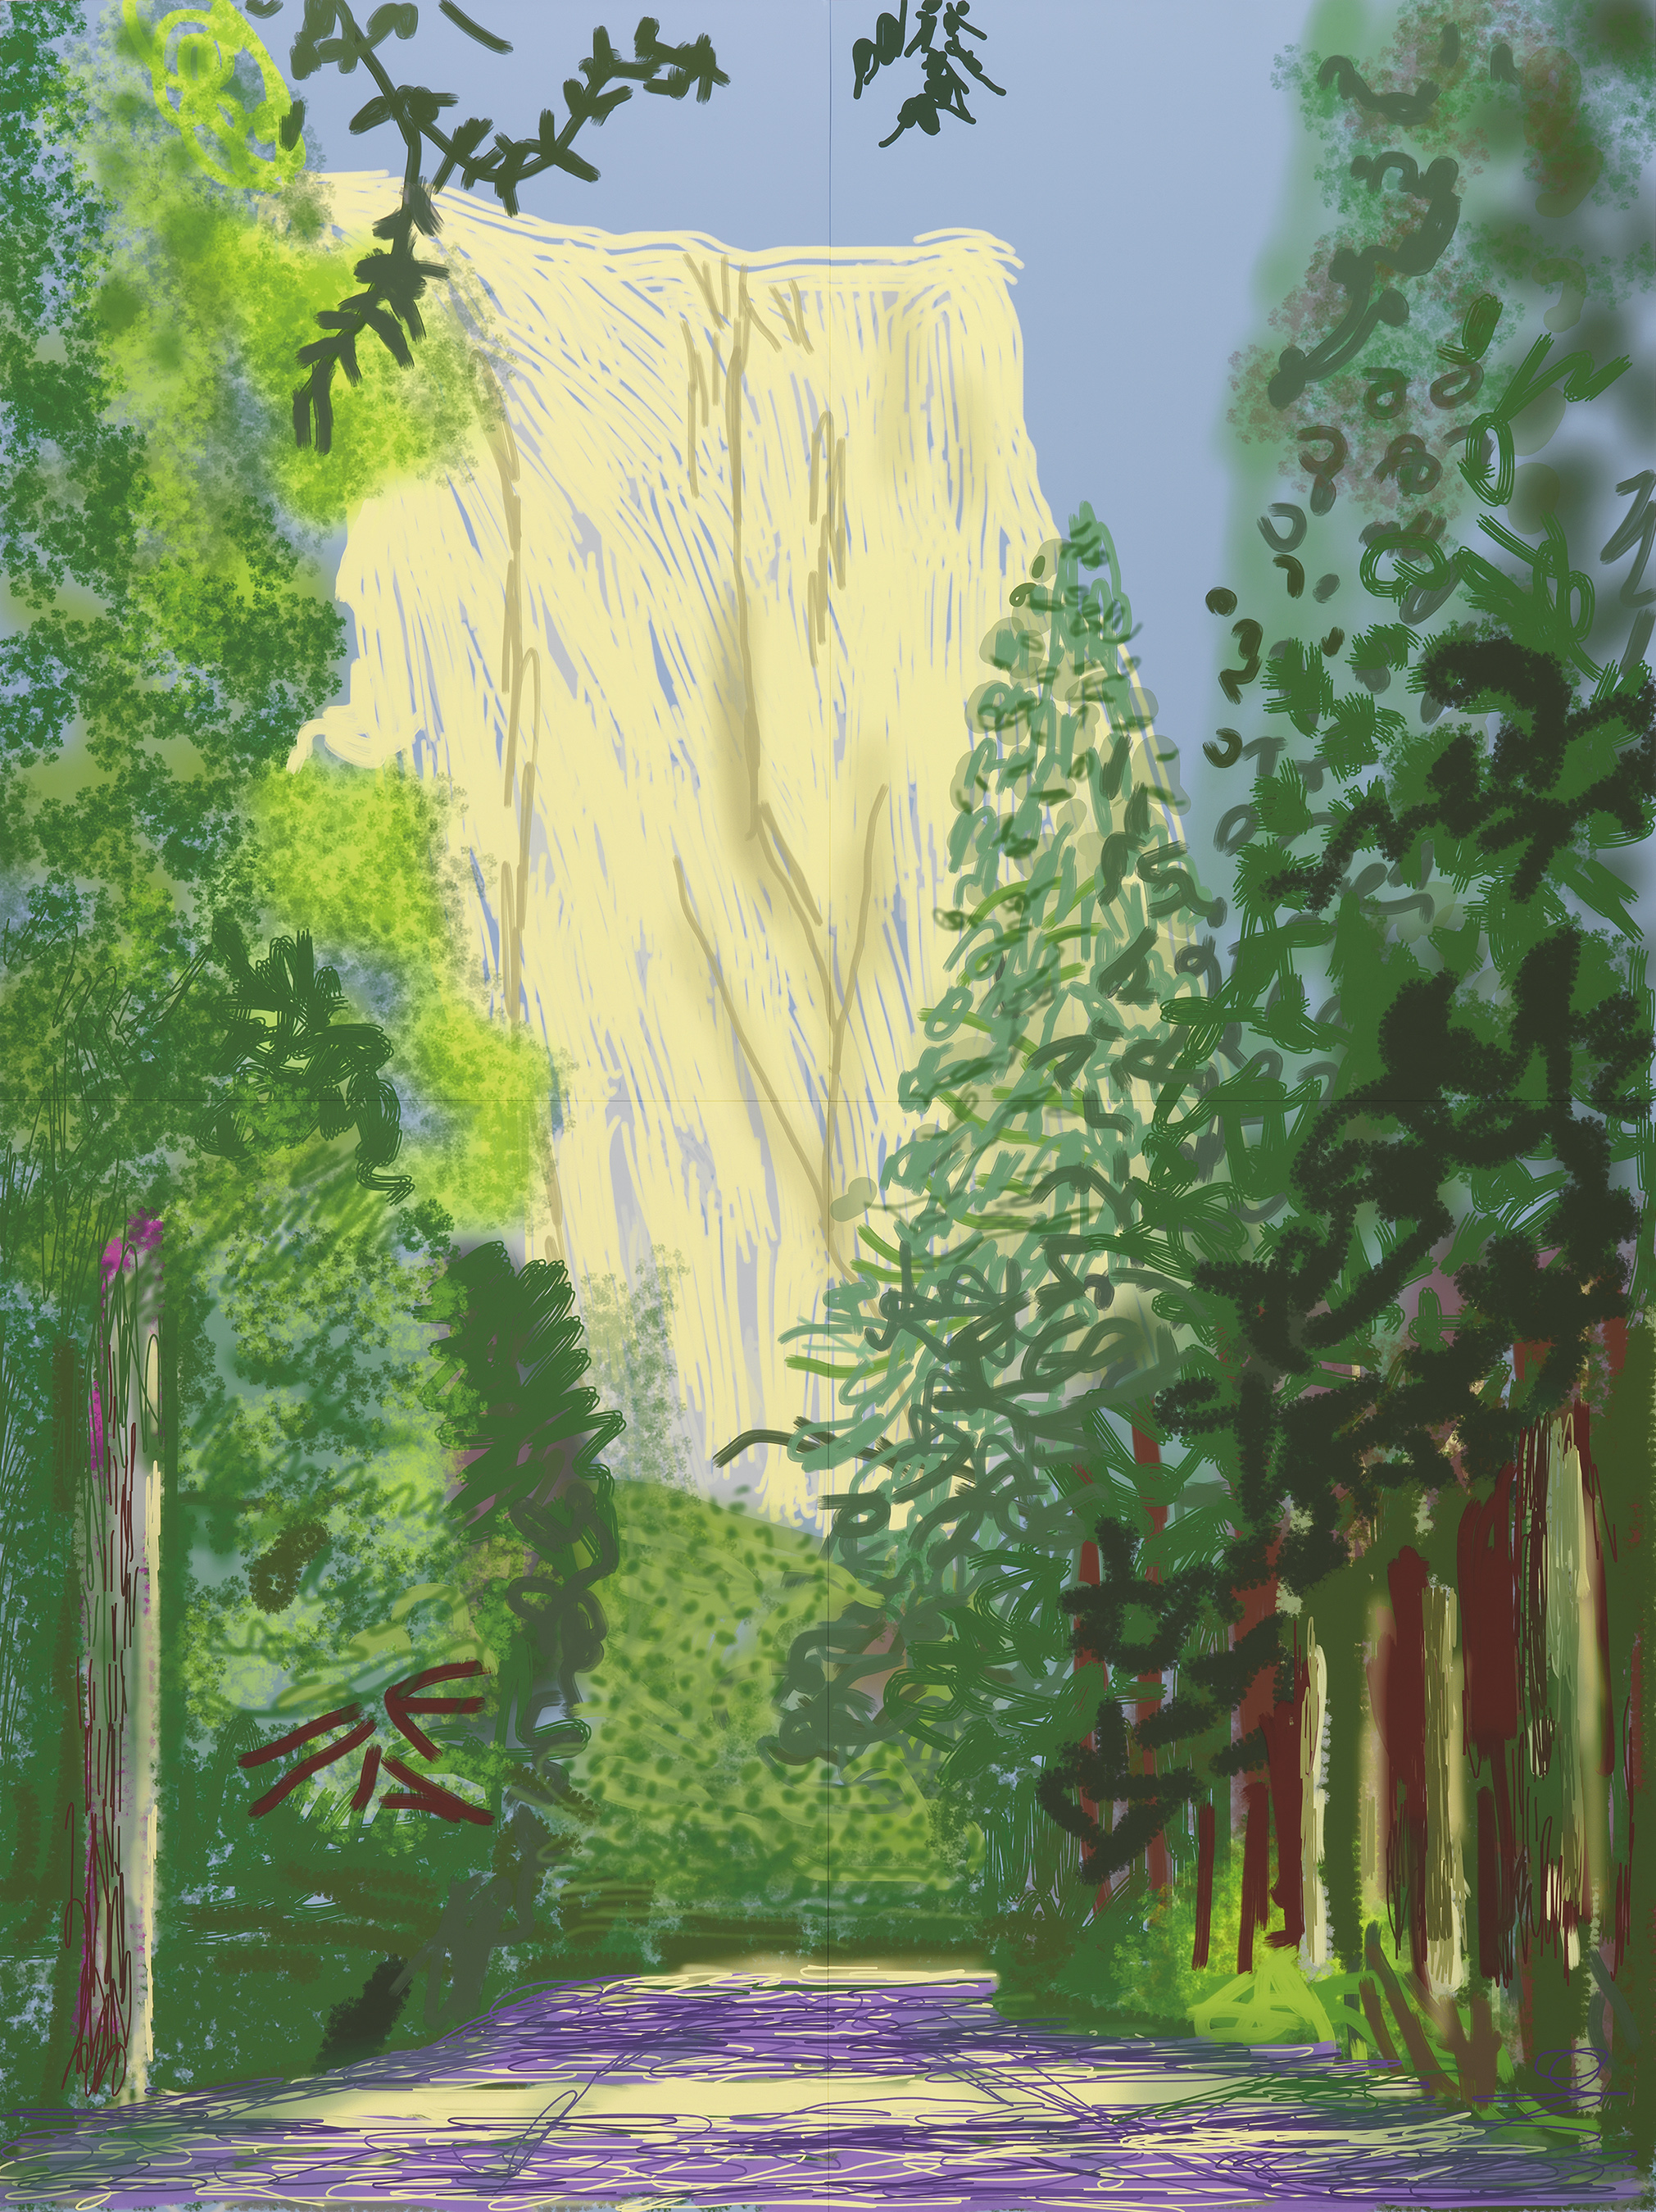 """Yosemite II, October 16th 2011"" iPad drawing printed on four sheets of paper (46 3/8 x 34 7/8"" each), mounted on four sheets of Dibond. Edition 1 of 12; 92 3/4 x 69 3/4"" overall. © David Hockney. Photo Credit: Richard Schmidt. Collection The David Hockney Foundation"